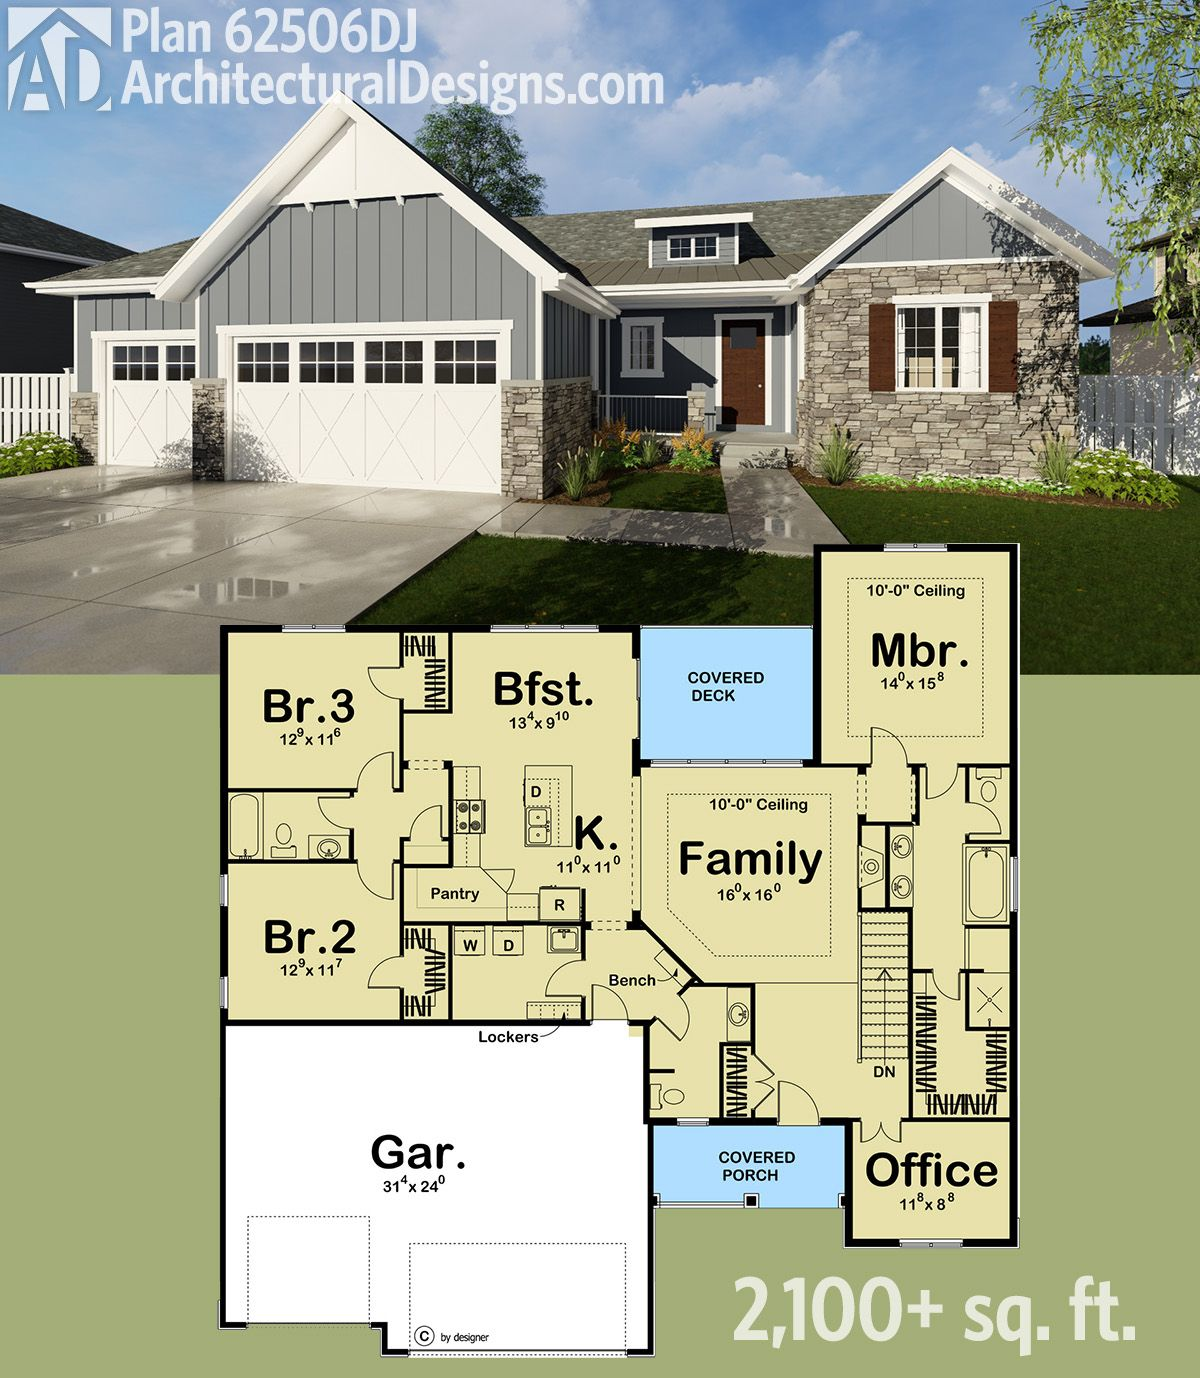 Plan 62506dj One Level Craftsman Home Plan With Private Office Craftsman House Plans Bungalow House Plans House Plans